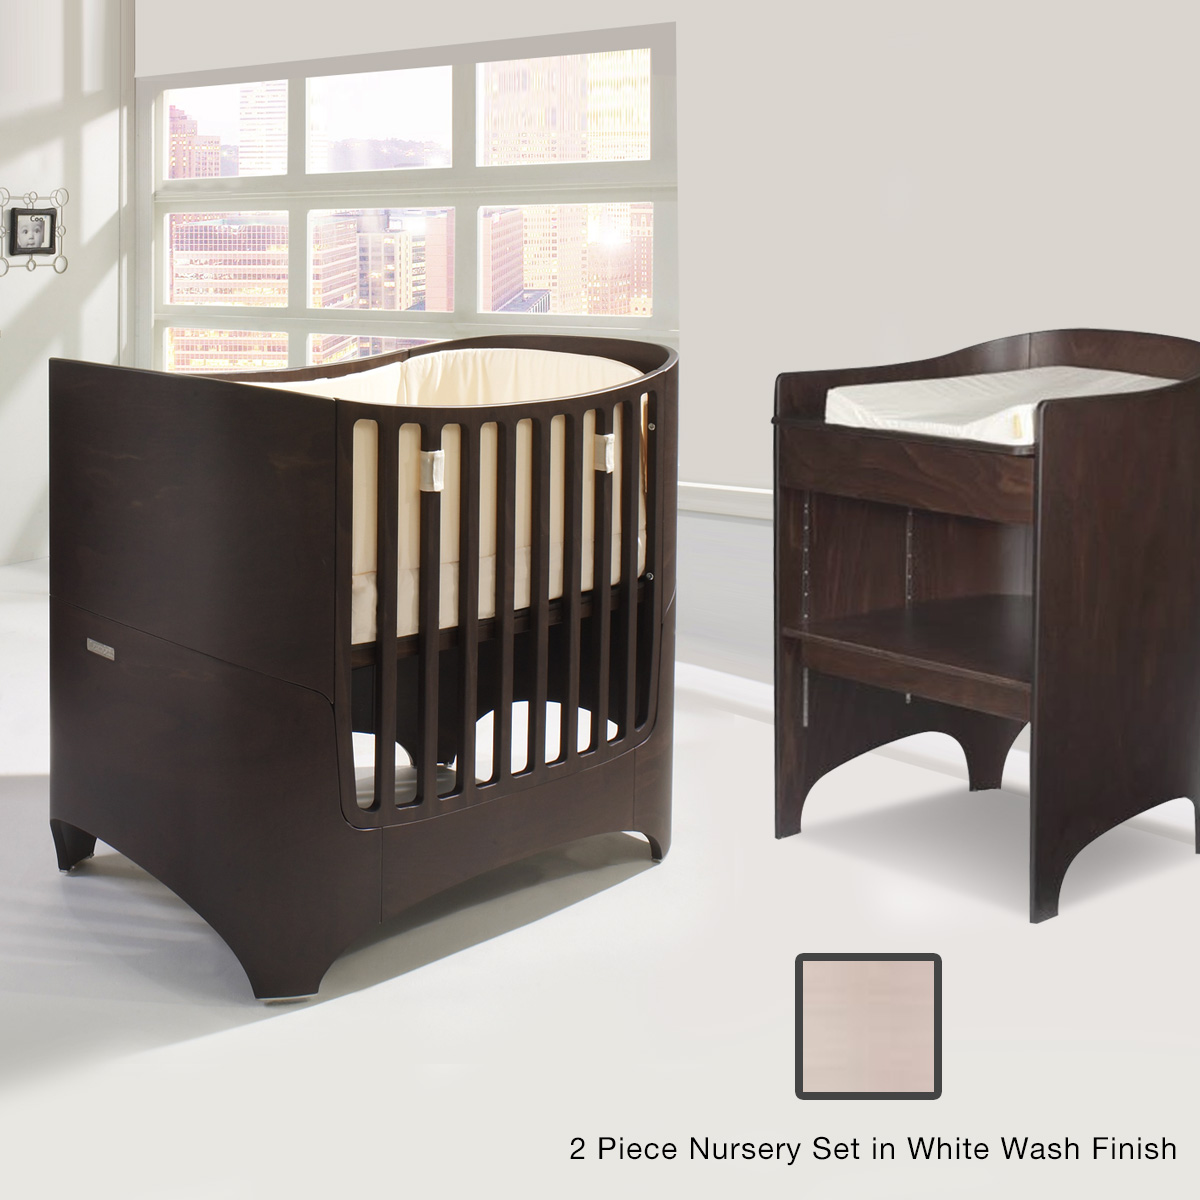 Tulip Leander 2 Piece Nursery Set   Crib + Conversion Kit And Changing Table  In White Wash FREE SHIPPING